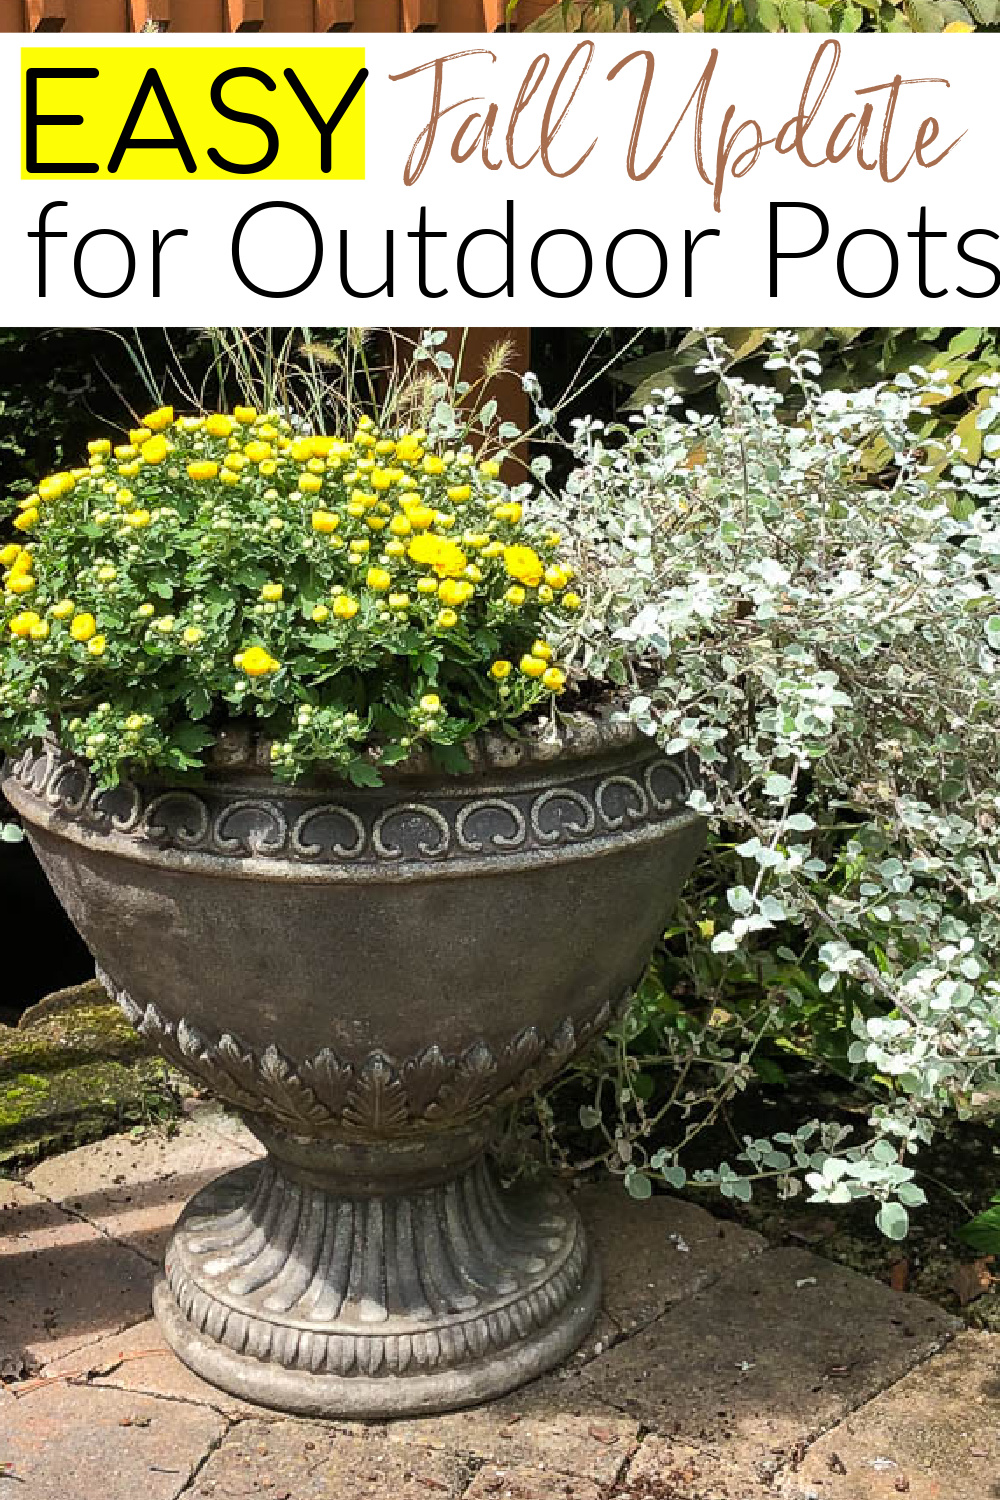 Easy Fall Update for Outdoor Pots - Learn how to quickly and easily update your outdoor pots from summer to fall.  #gardening #outdoorpots #fallannuals #DIYgardening via @spaula